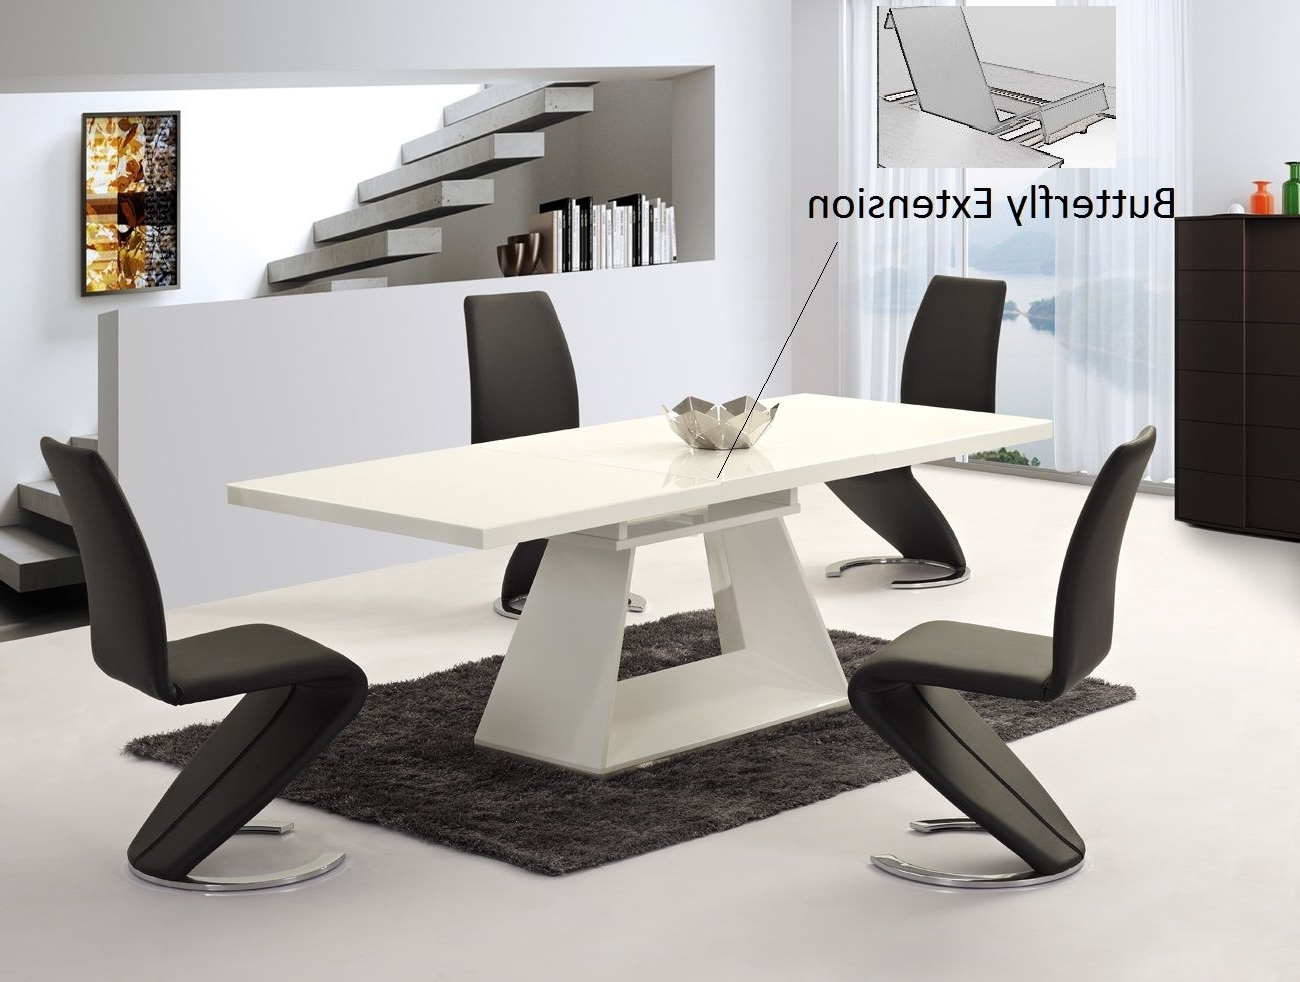 2018 Ga Silvano Extending White Gloss 160 220Cm Dining Table & Luciano Chairs Intended For White Extending Dining Tables And Chairs (View 13 of 25)